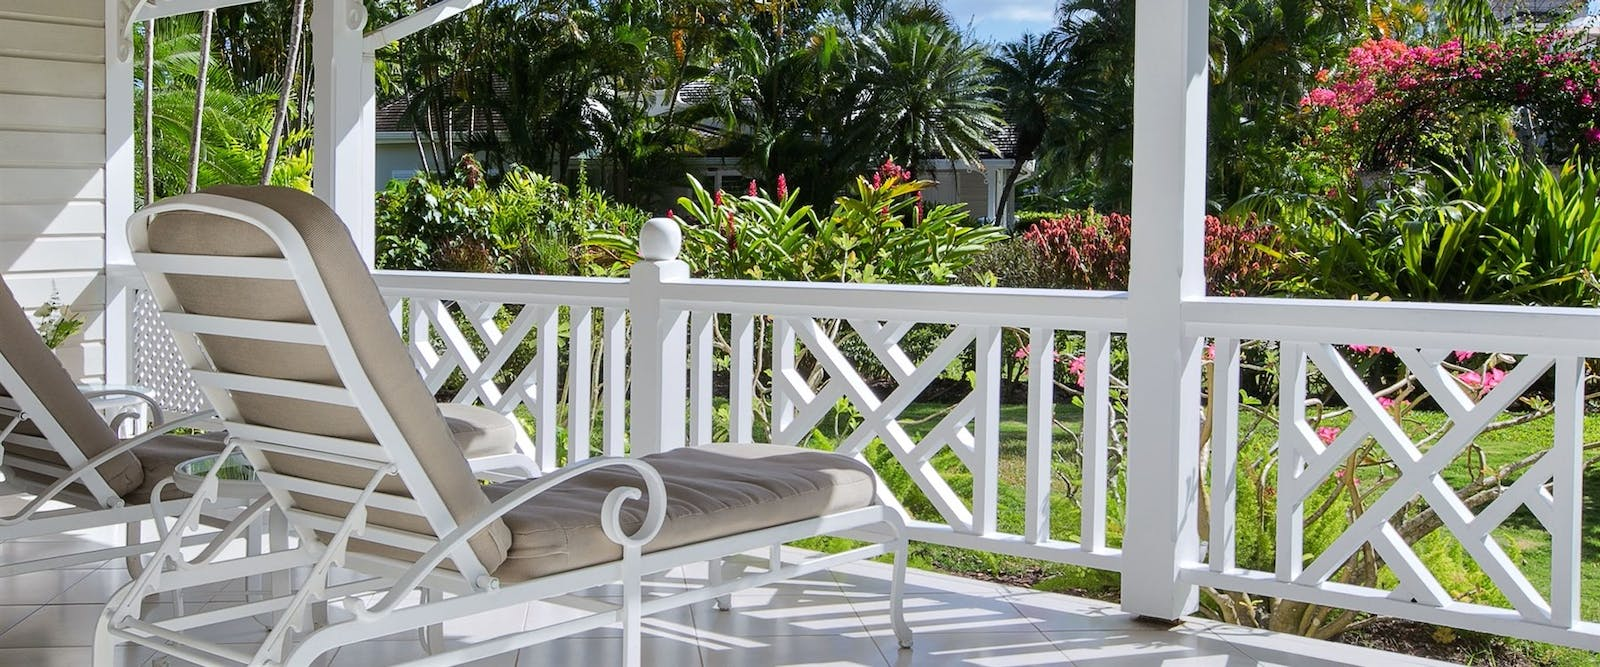 Luxury Cottage Patio at Coral Reef Club, Barbados